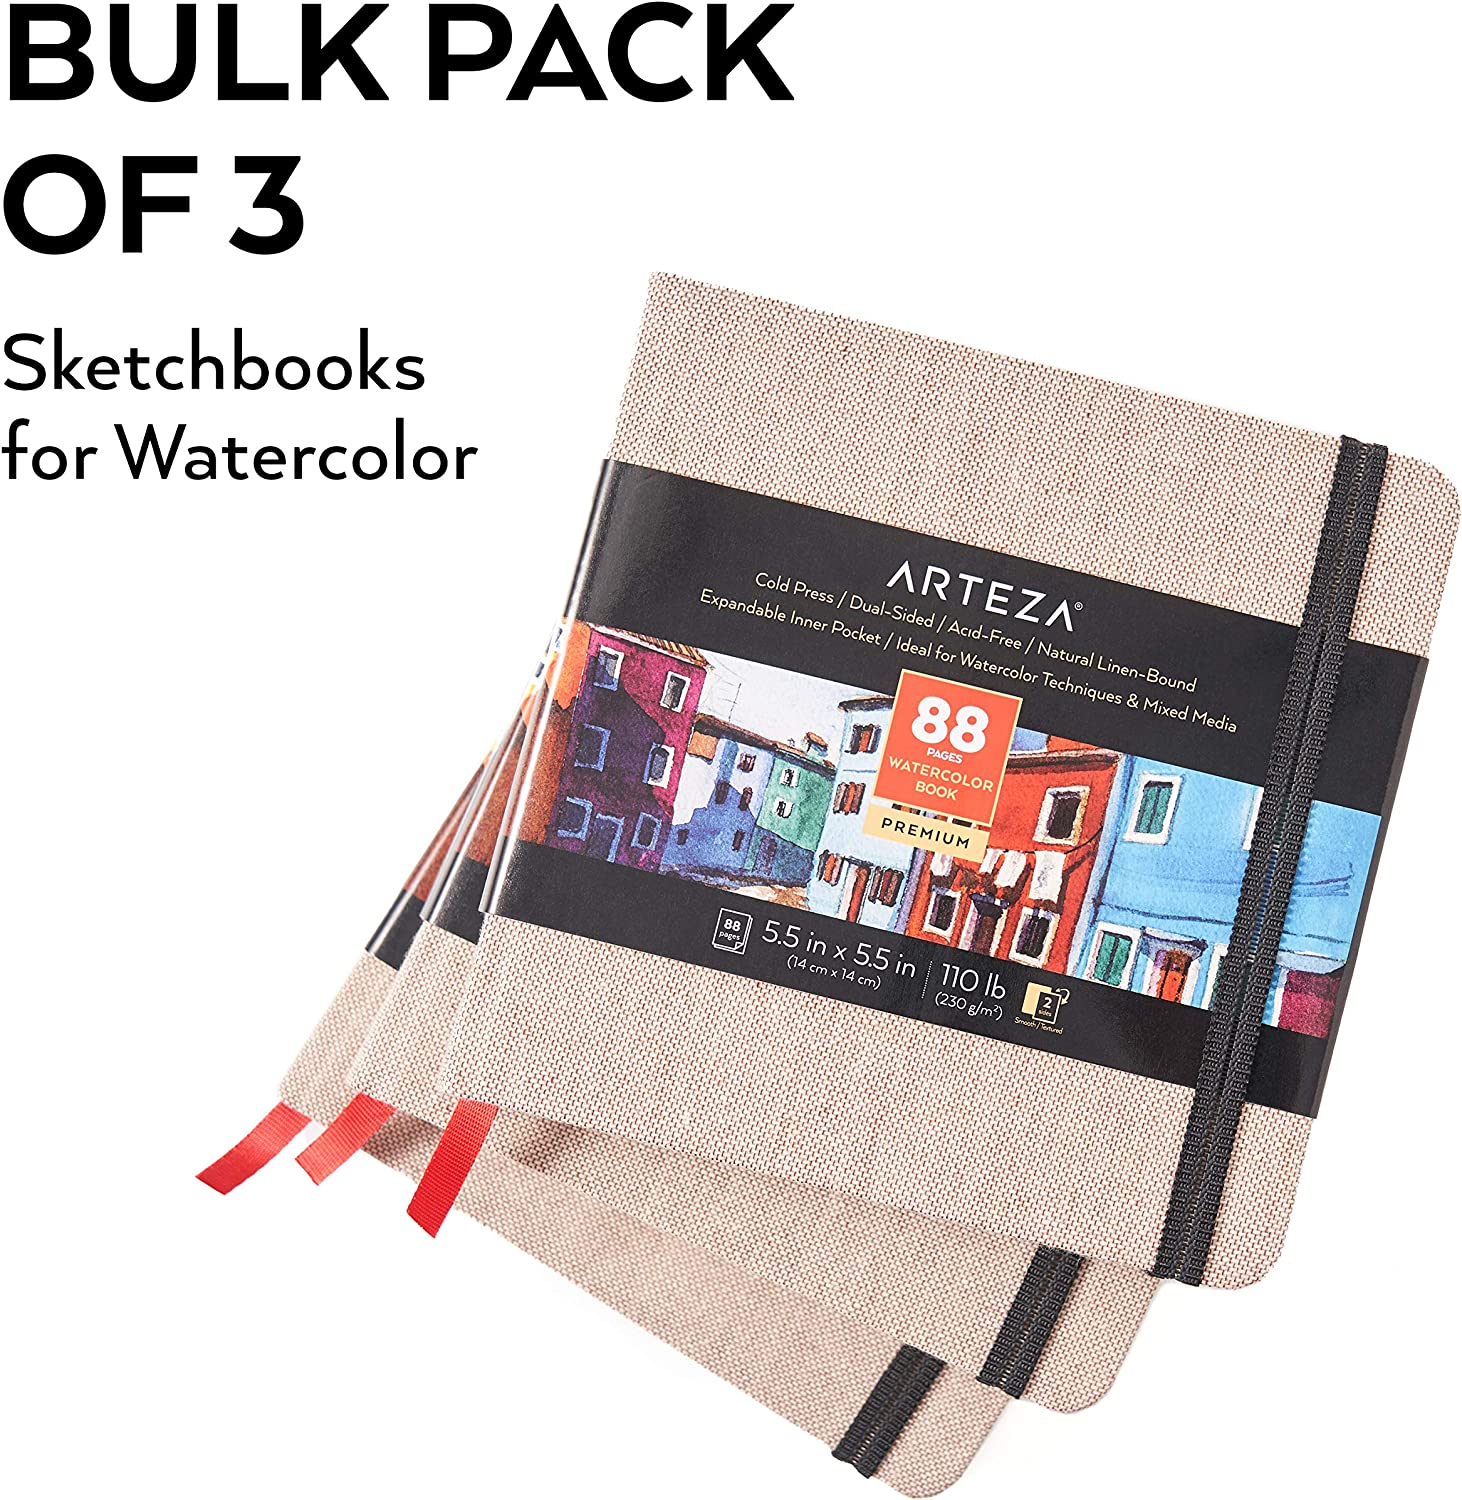 Beige Art Journal 3-Pack 5.5x5.5-inch Watercolor Sketchbook for Use as Travel Journal and Mixed Media Pad Arteza Watercolor Sketchbooks Hardcover 110lb Paper Book 132 Sheets